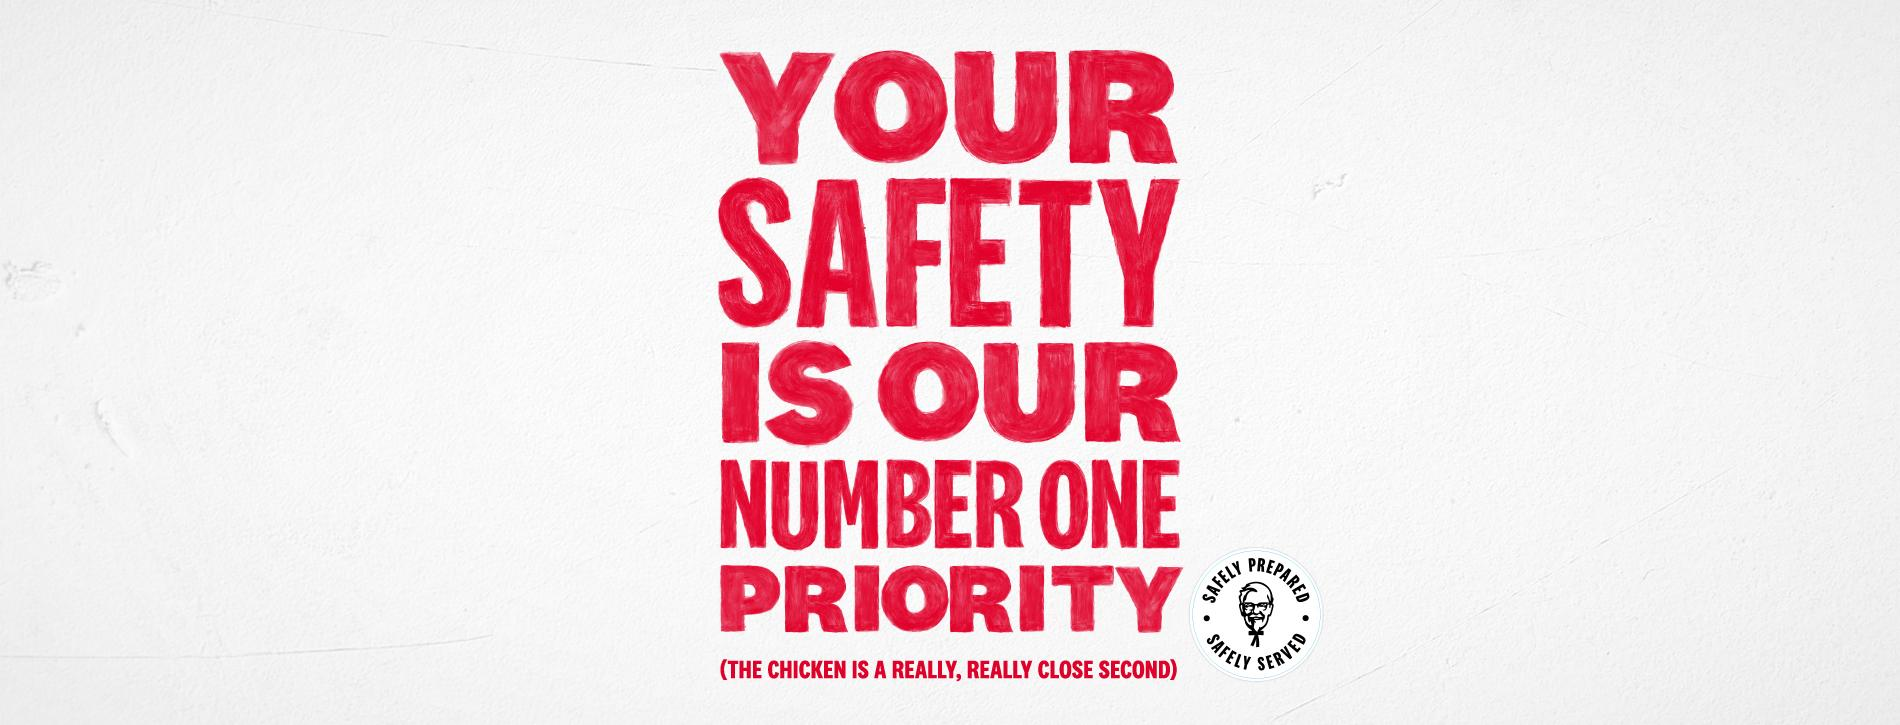 YOUR SAFETY IS OUR NUMBER ONE PRIORITY